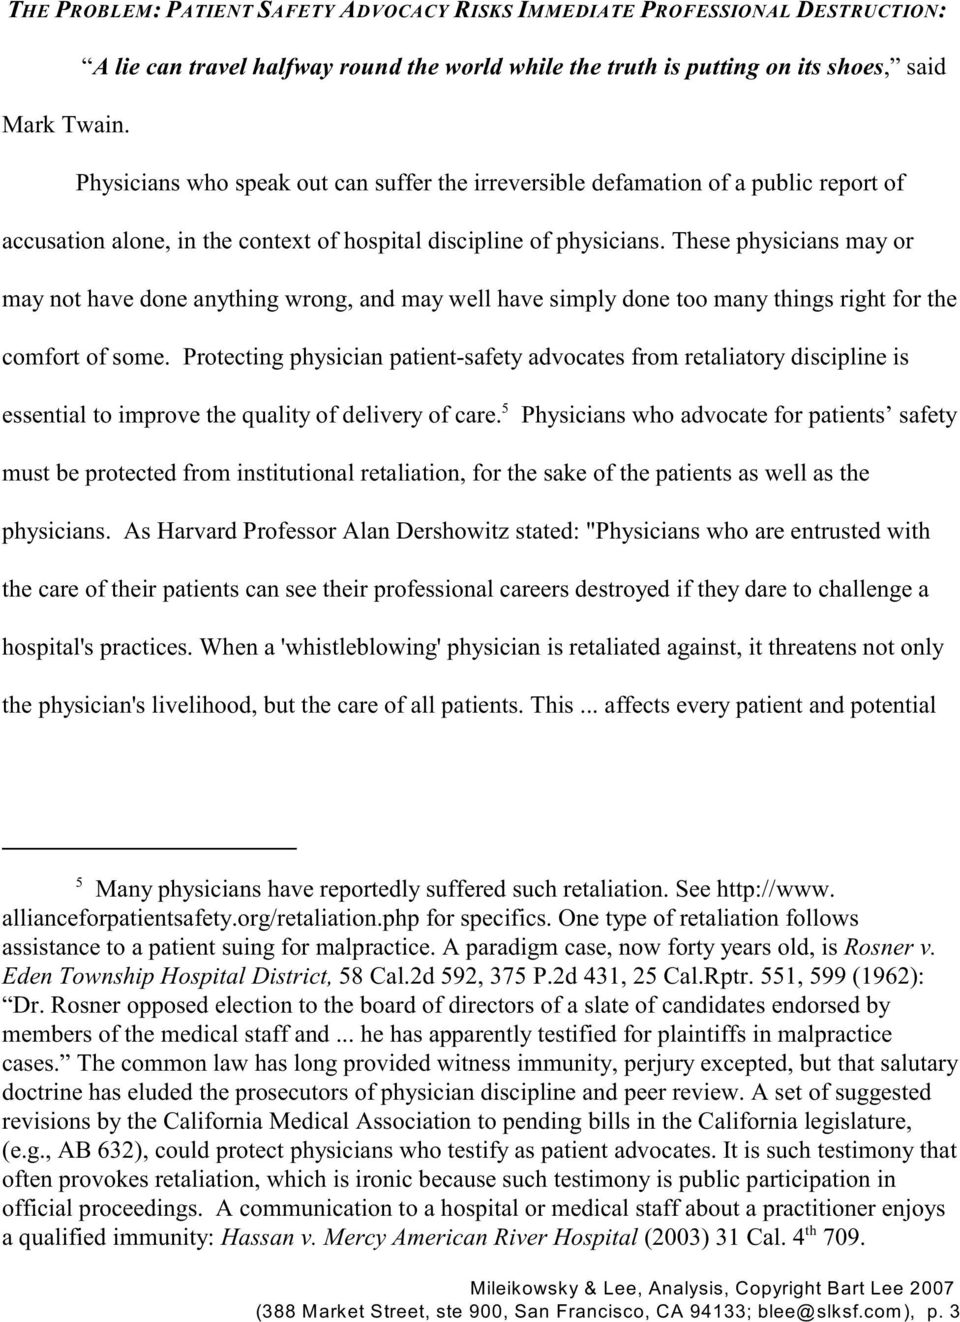 context of hospital discipline of physicians. These physicians may or may not have done anything wrong, and may well have simply done too many things right for the comfort of some.